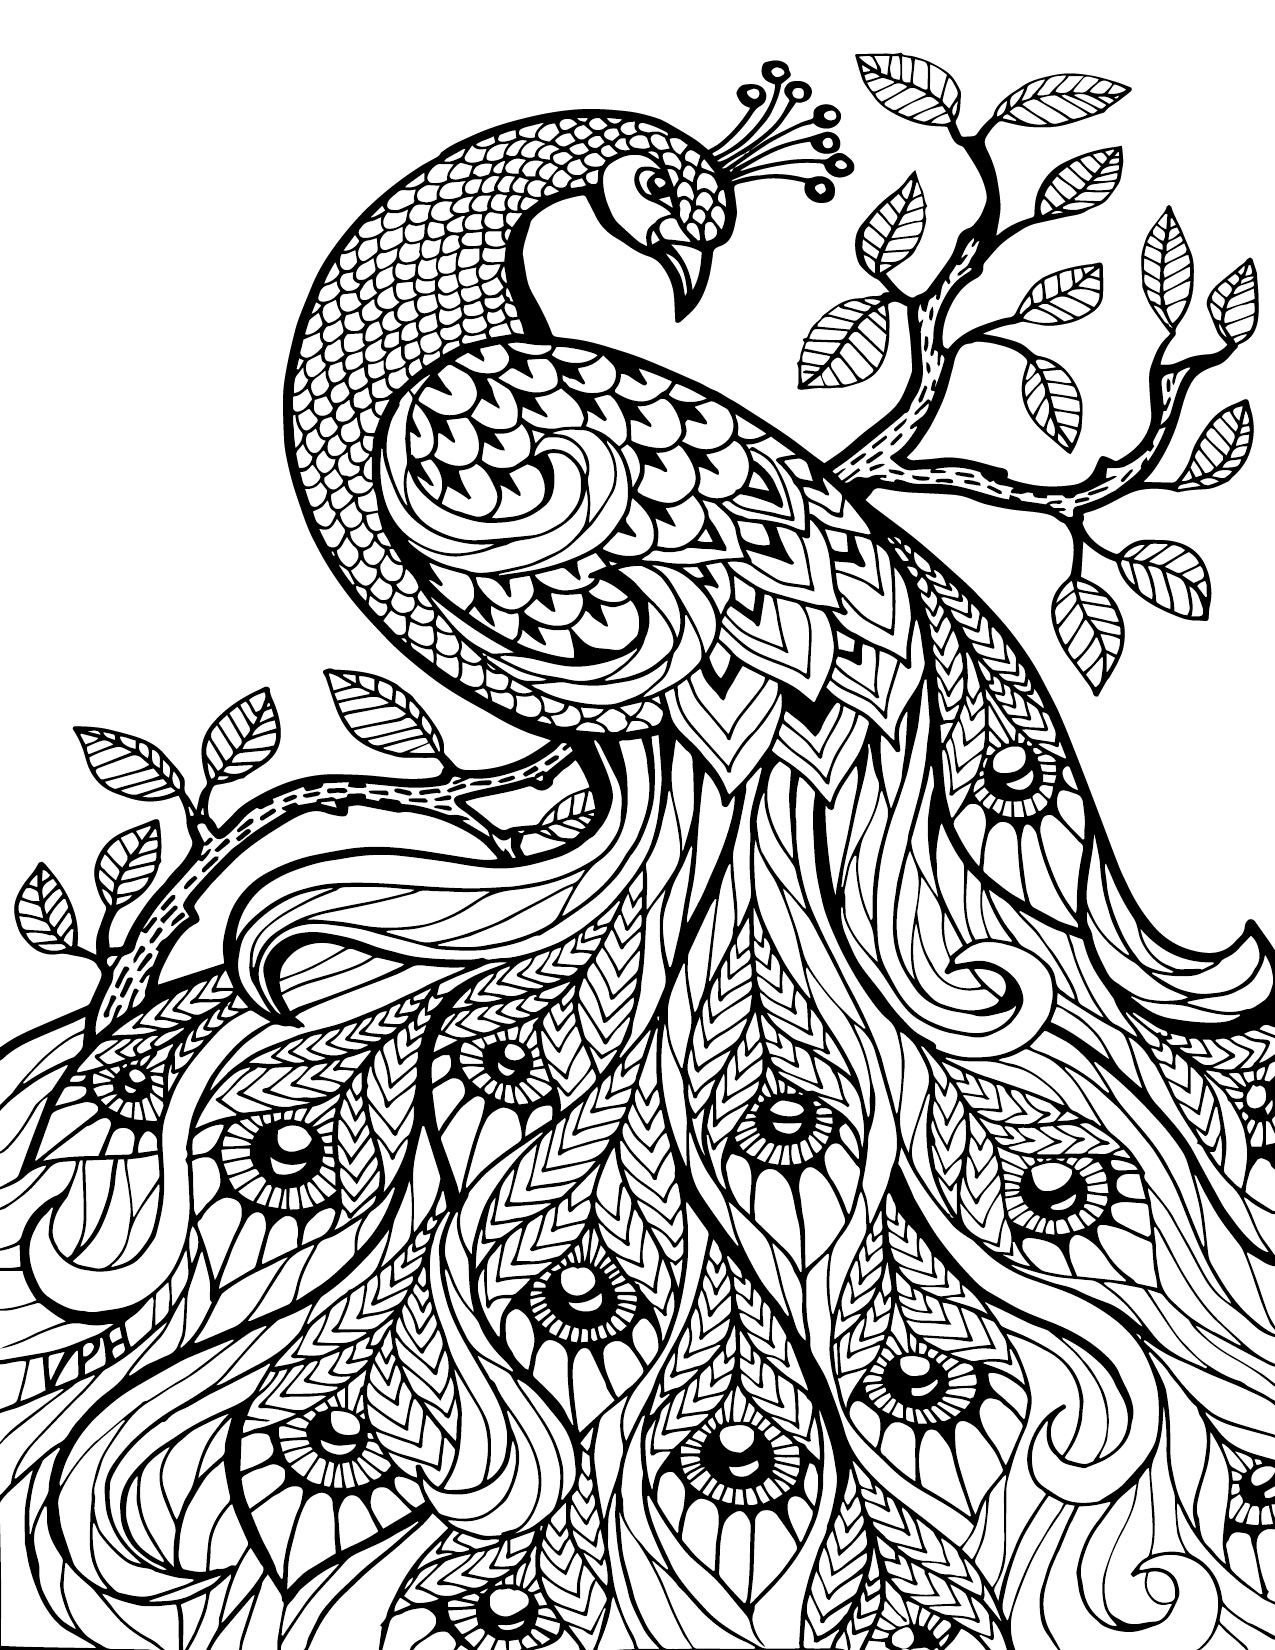 Free Download Adult Coloring Pages Coloring Pages Free Pdf